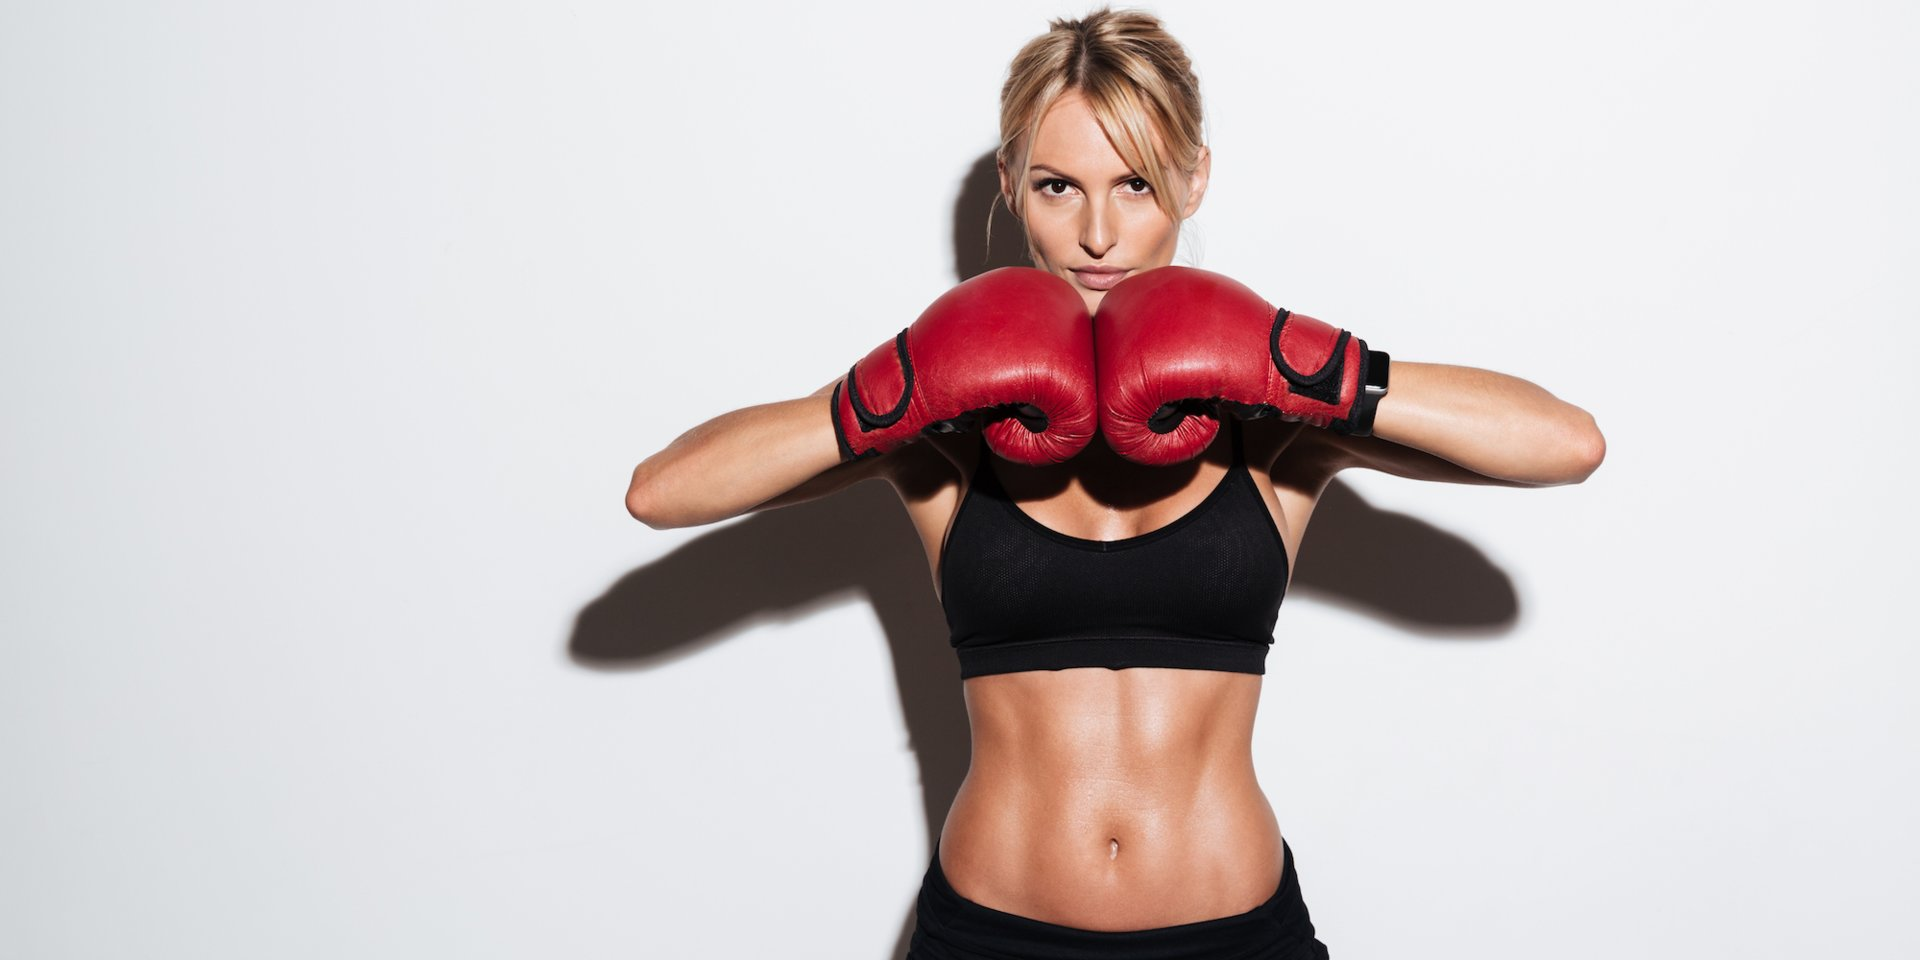 30 Days Free Cardio Kickboxing - Offer ends Feb. 15, 2019